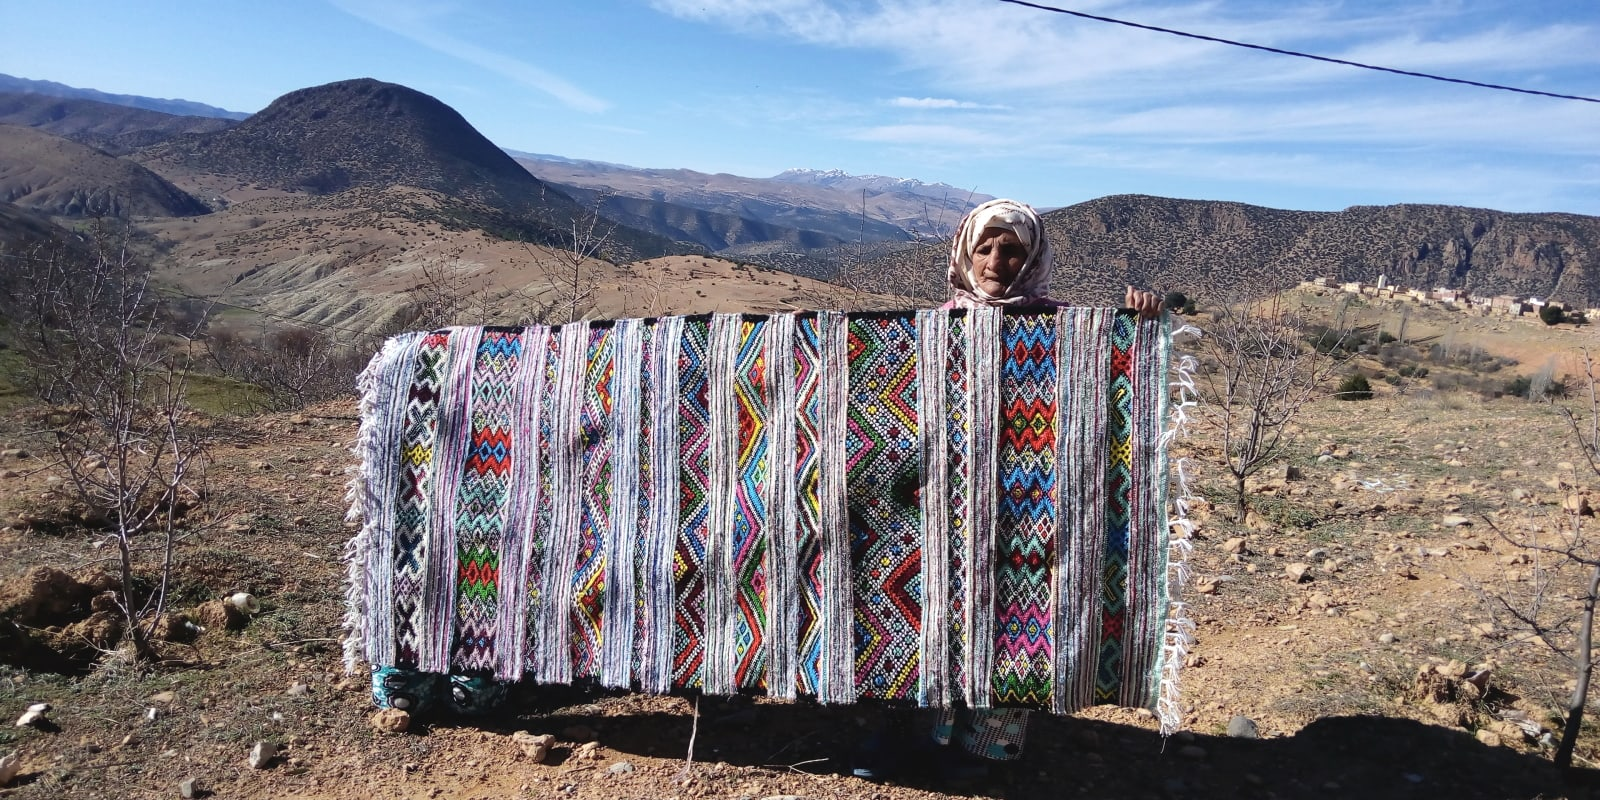 Hanbel Stroma, Lhdeb, and Wool Colored Morocco